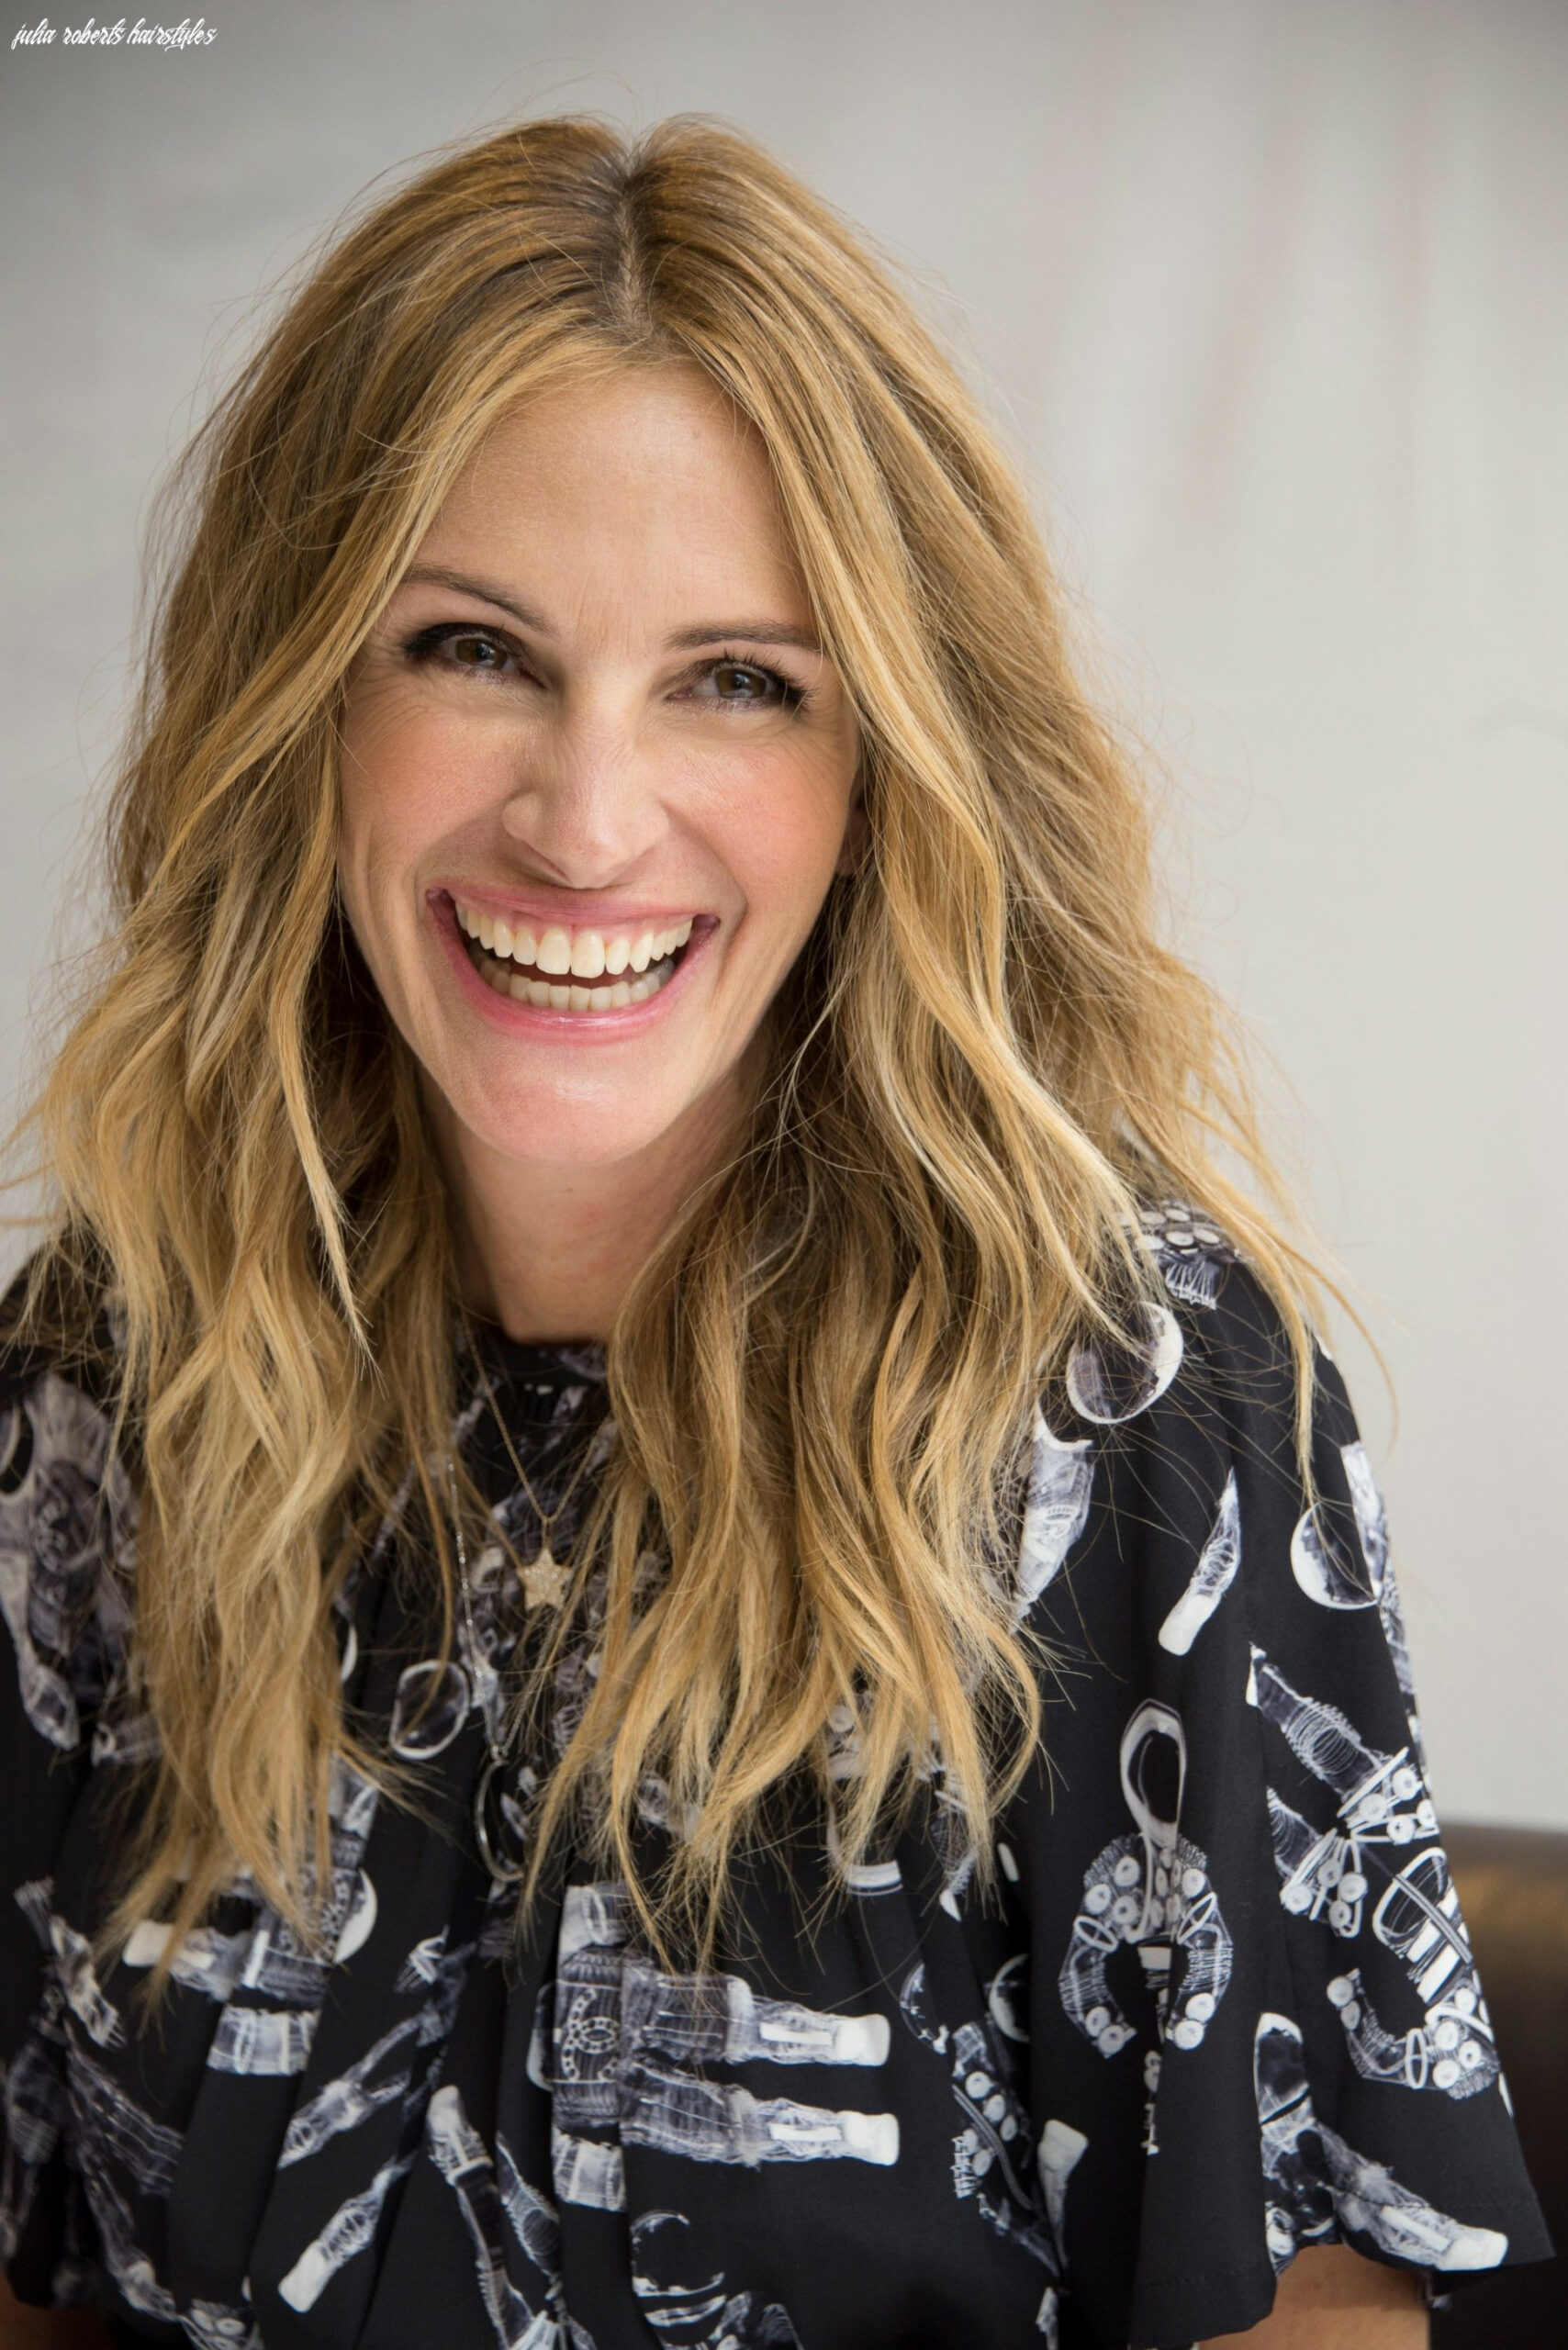 Julia roberts cut her hair into a tousled lob, her shortest cut in